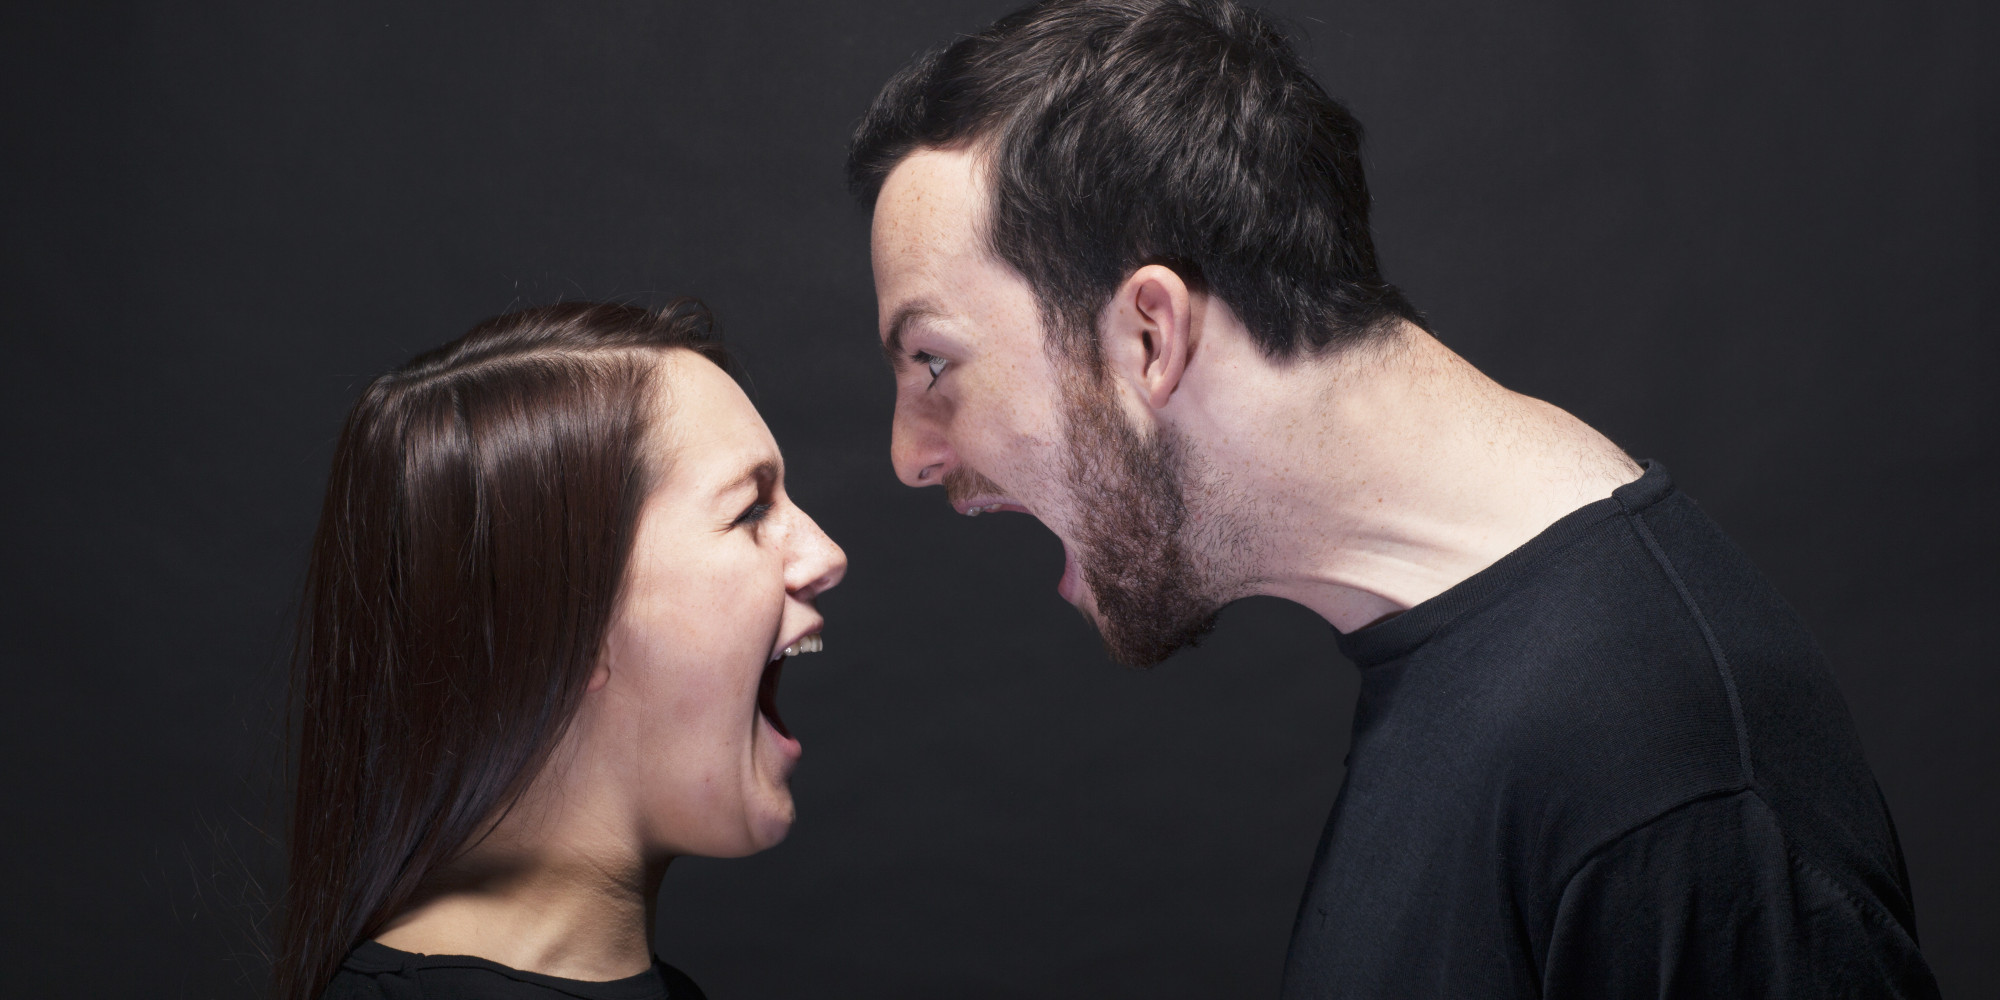 an analysis of the arguing between a man and woman The hours they spend together, look like a sort of perfumed garden, a dim twilight, and a fountain singing to it the scorpio man and woman alone make each other feel alive with the intense passion and devotion they have for each other.